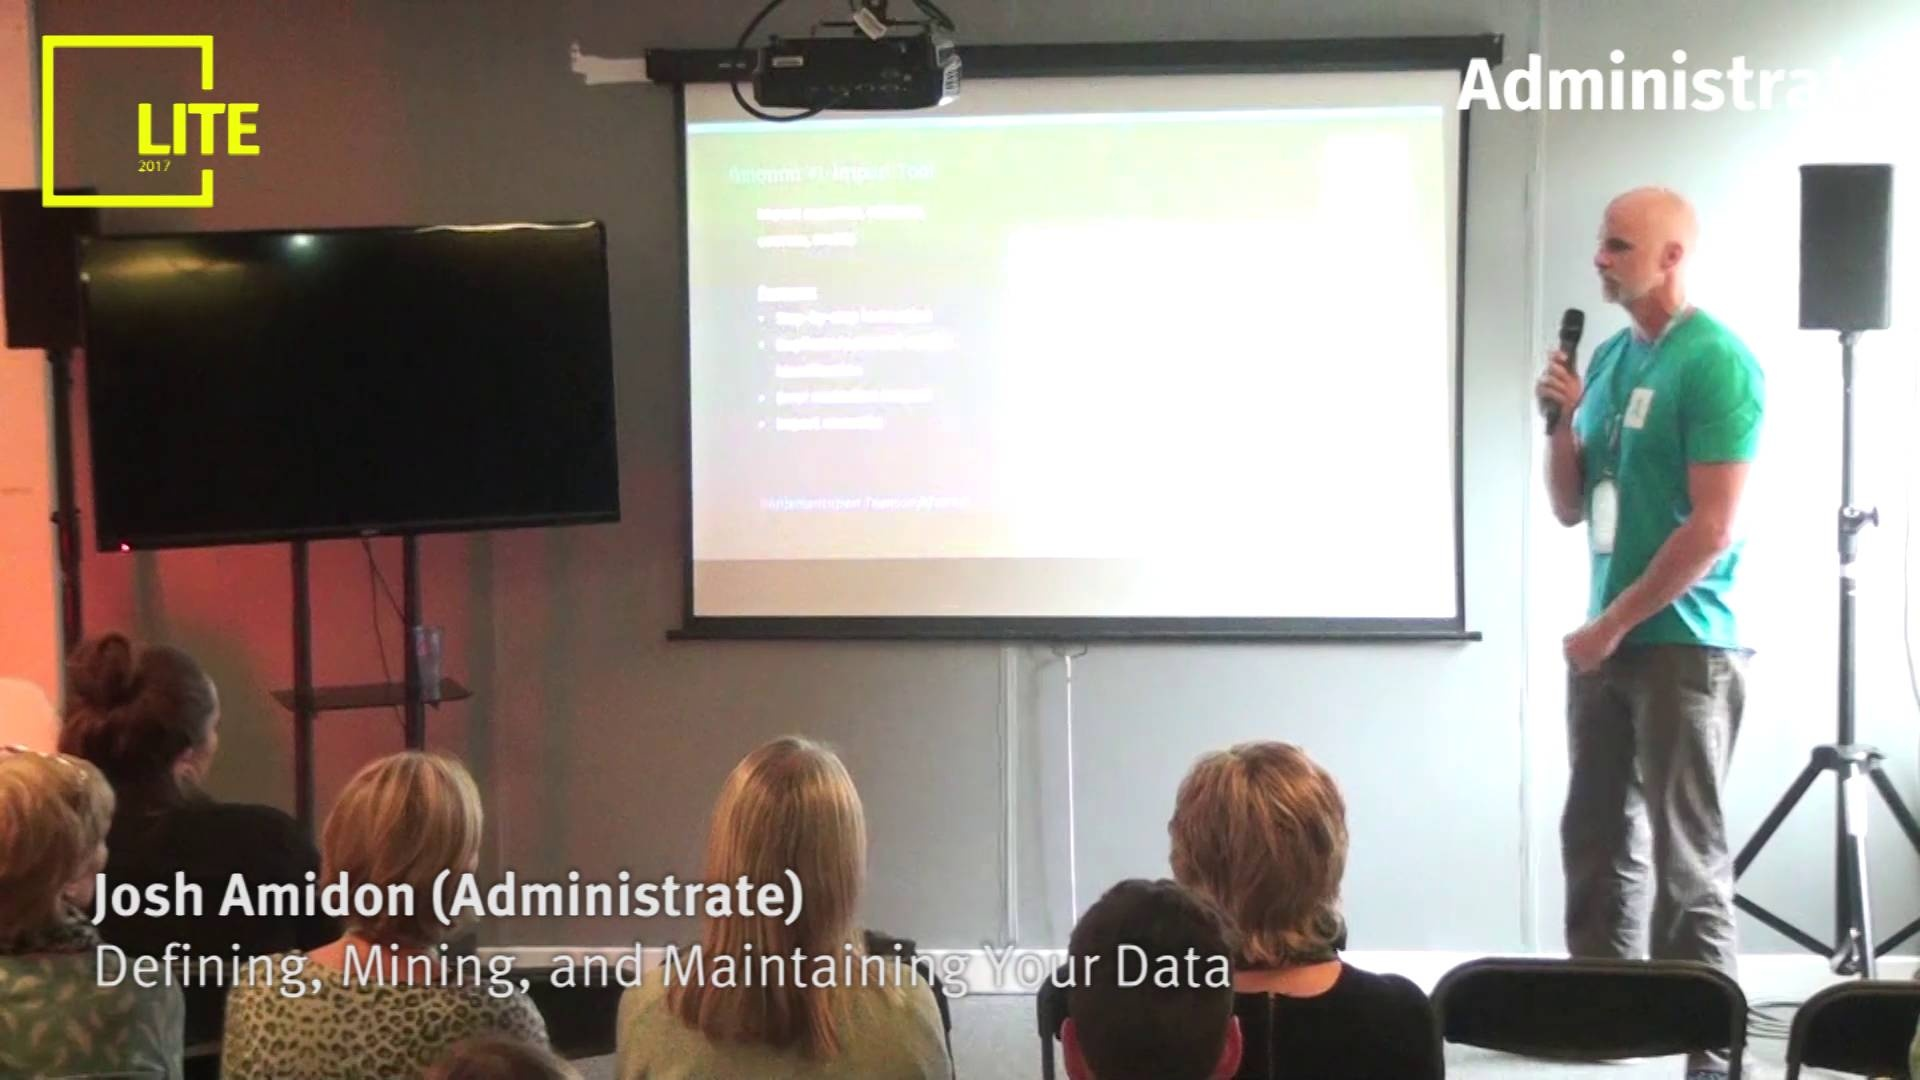 Defining, Mining, and Maintaining Your Data [Josh Amidon]